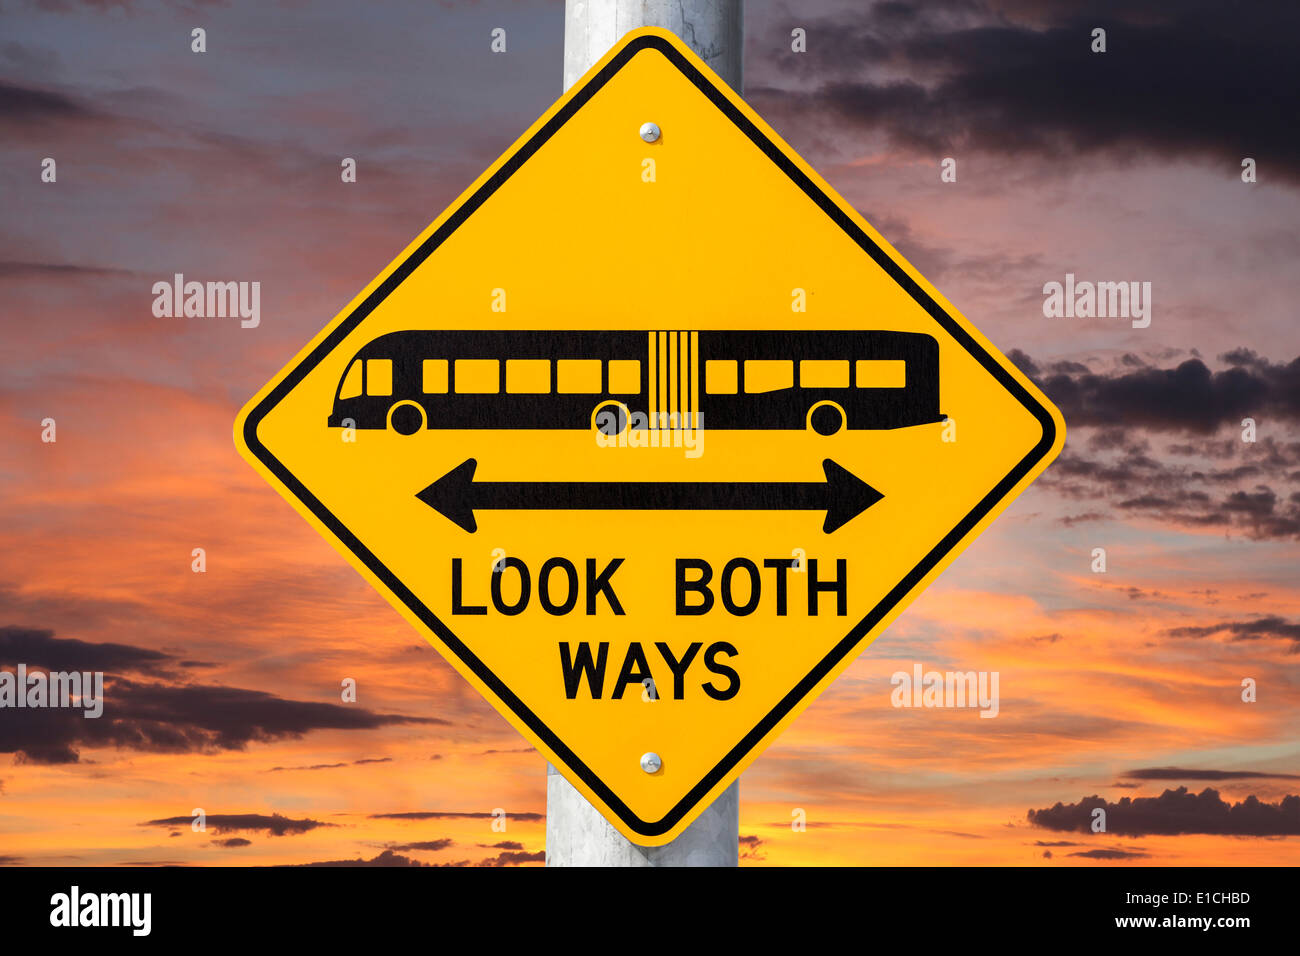 Look both ways bus and tram warning sign with sunset sky. - Stock Image